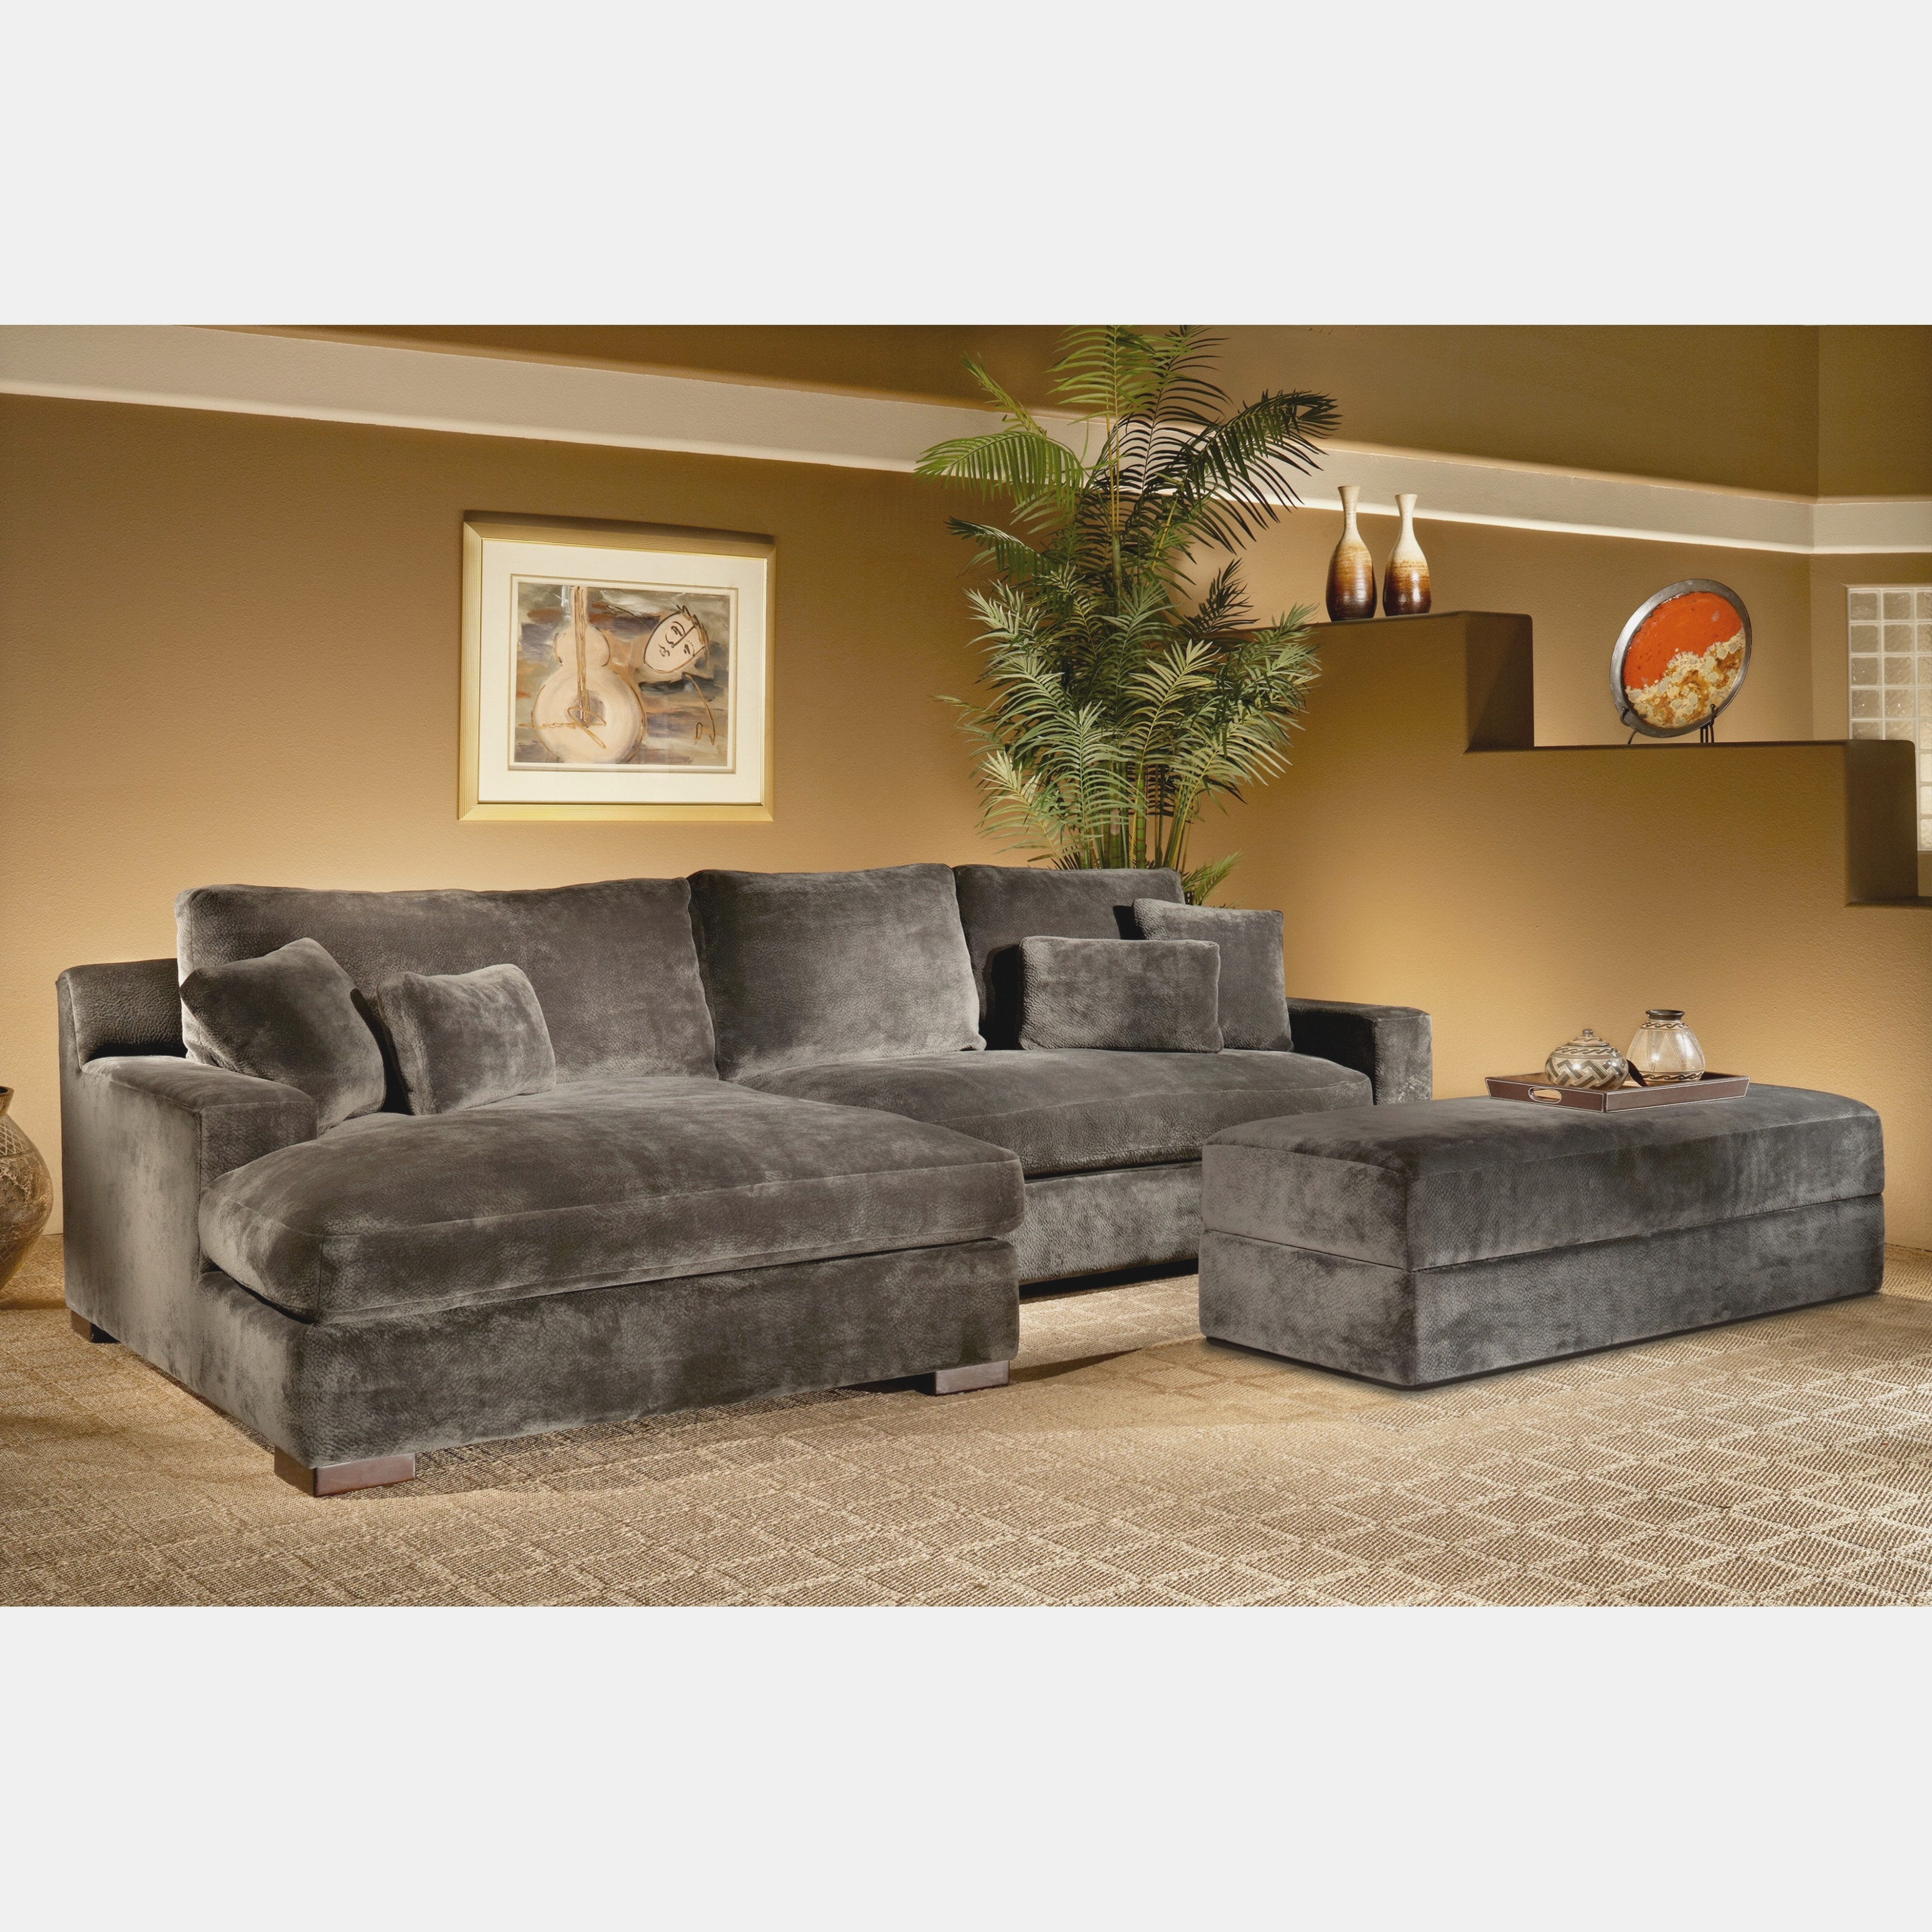 How Chaise Sofa With Storage | Interior Design Information With Regard To Taren Reversible Sofa/chaise Sleeper Sectionals With Storage Ottoman (Image 10 of 25)